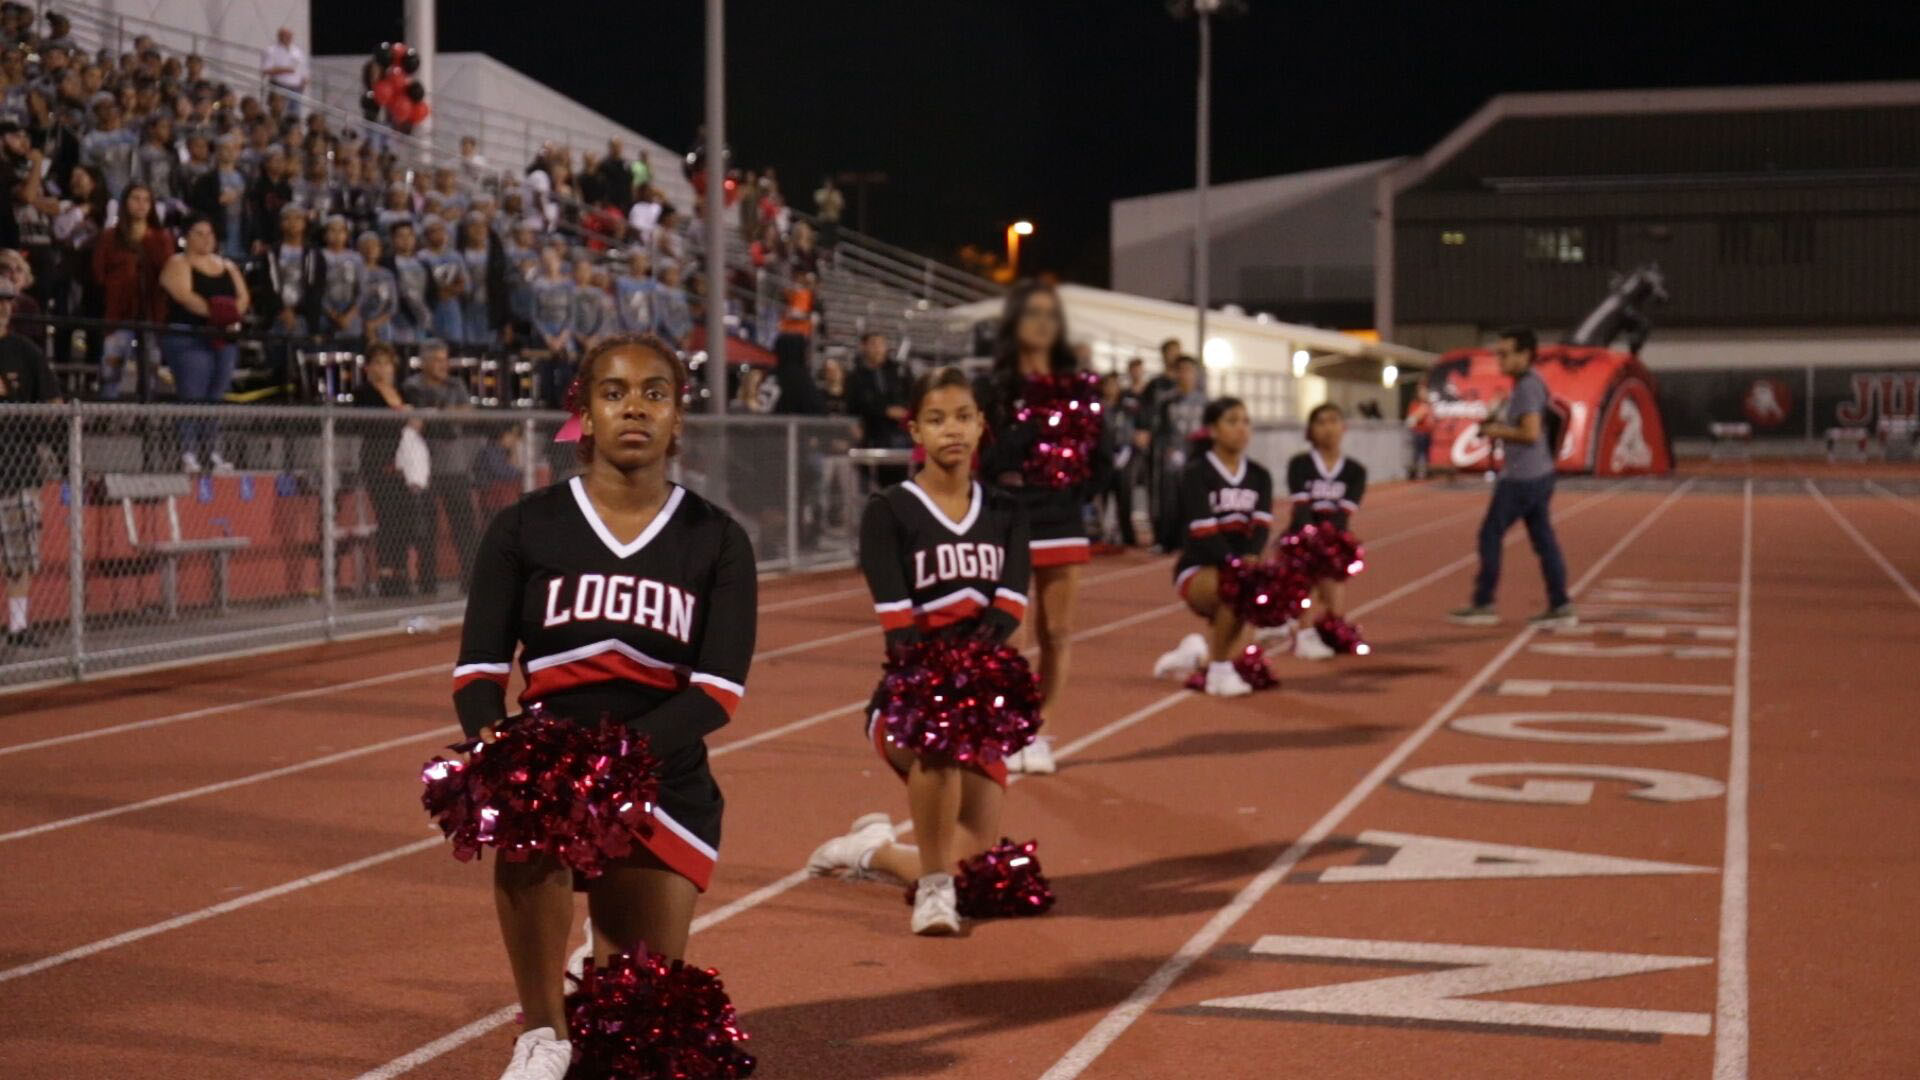 Opinion: I'm A Cheerleader, Here's Why I Take A Knee